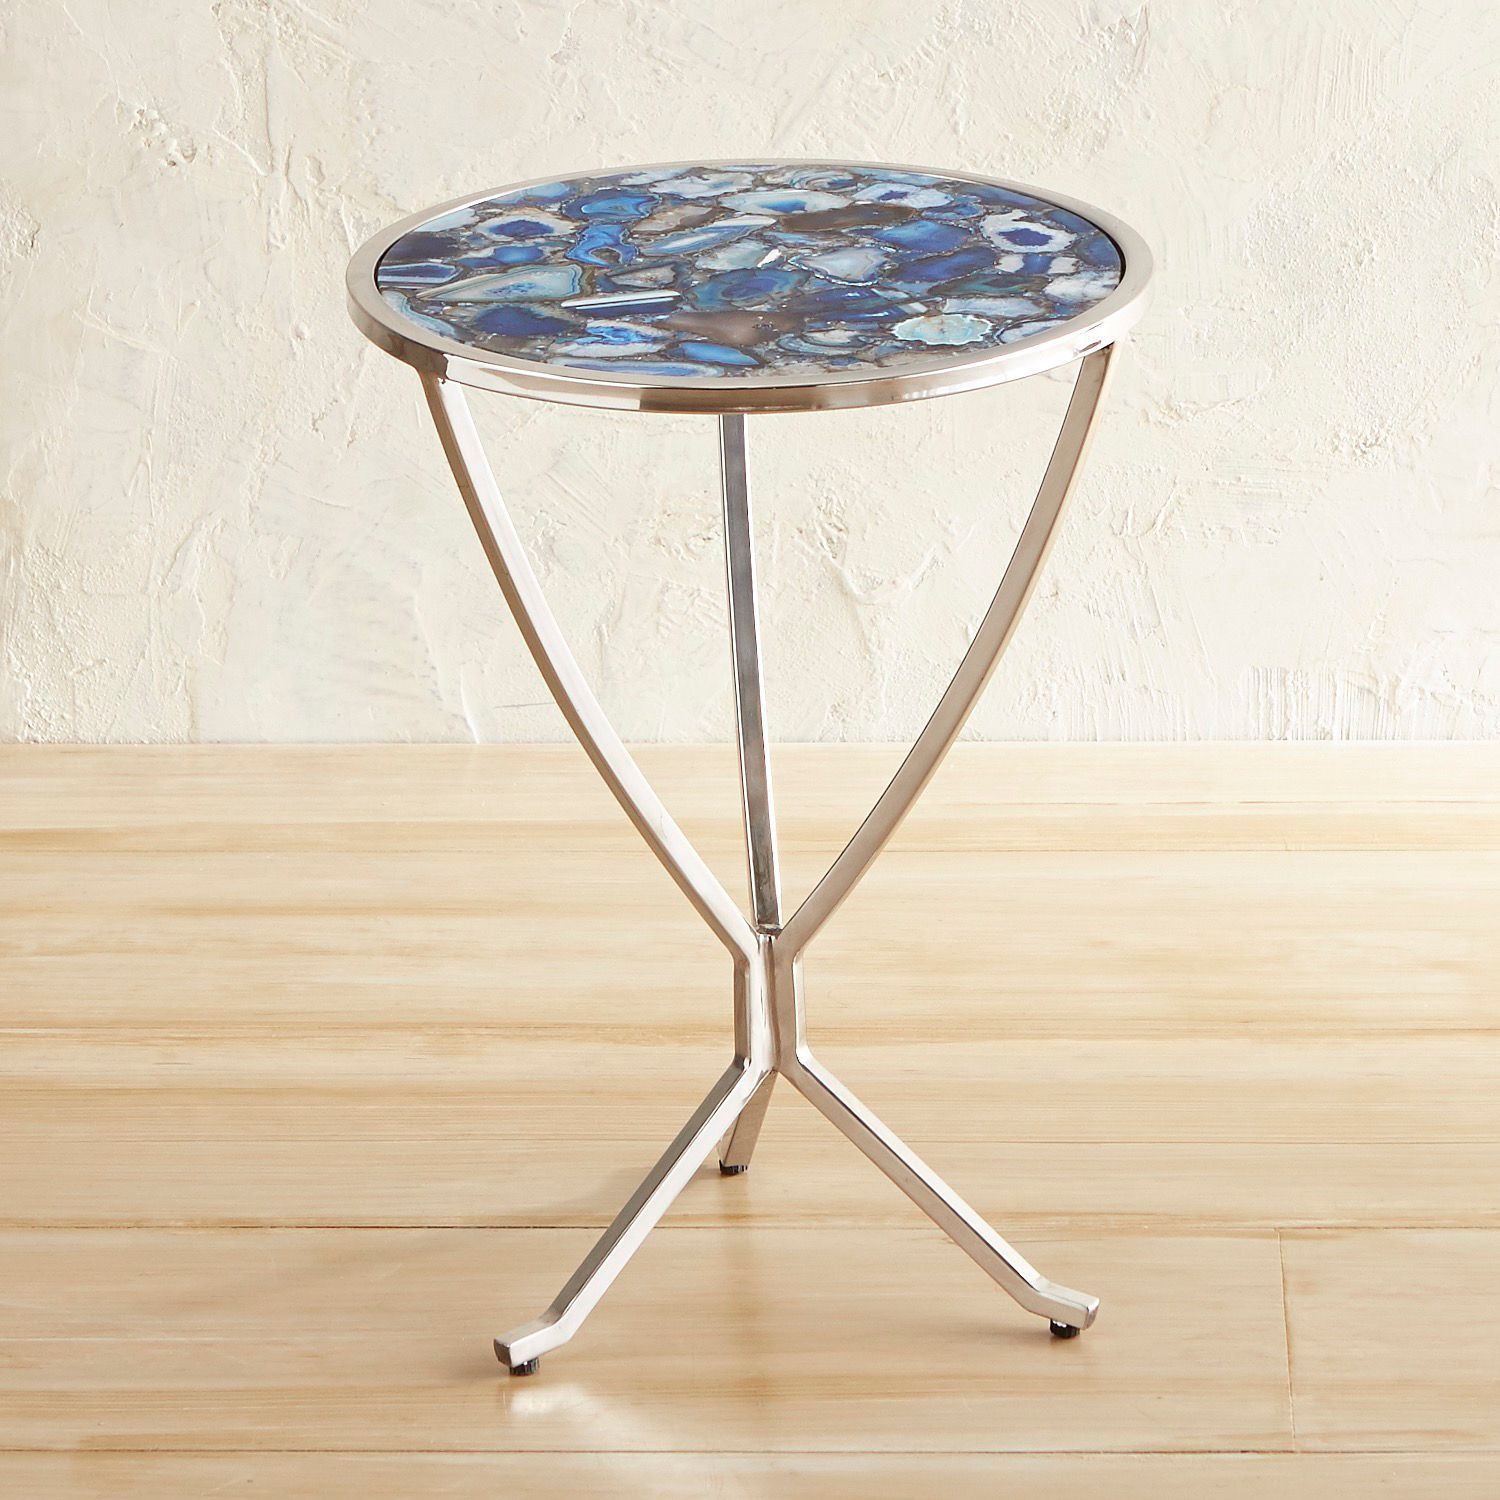 blue agate accent table pier imports glass bedding storage cast aluminum end kitchen cupboards animal print chair square clear coffee victorian side wardrobe furniture designer